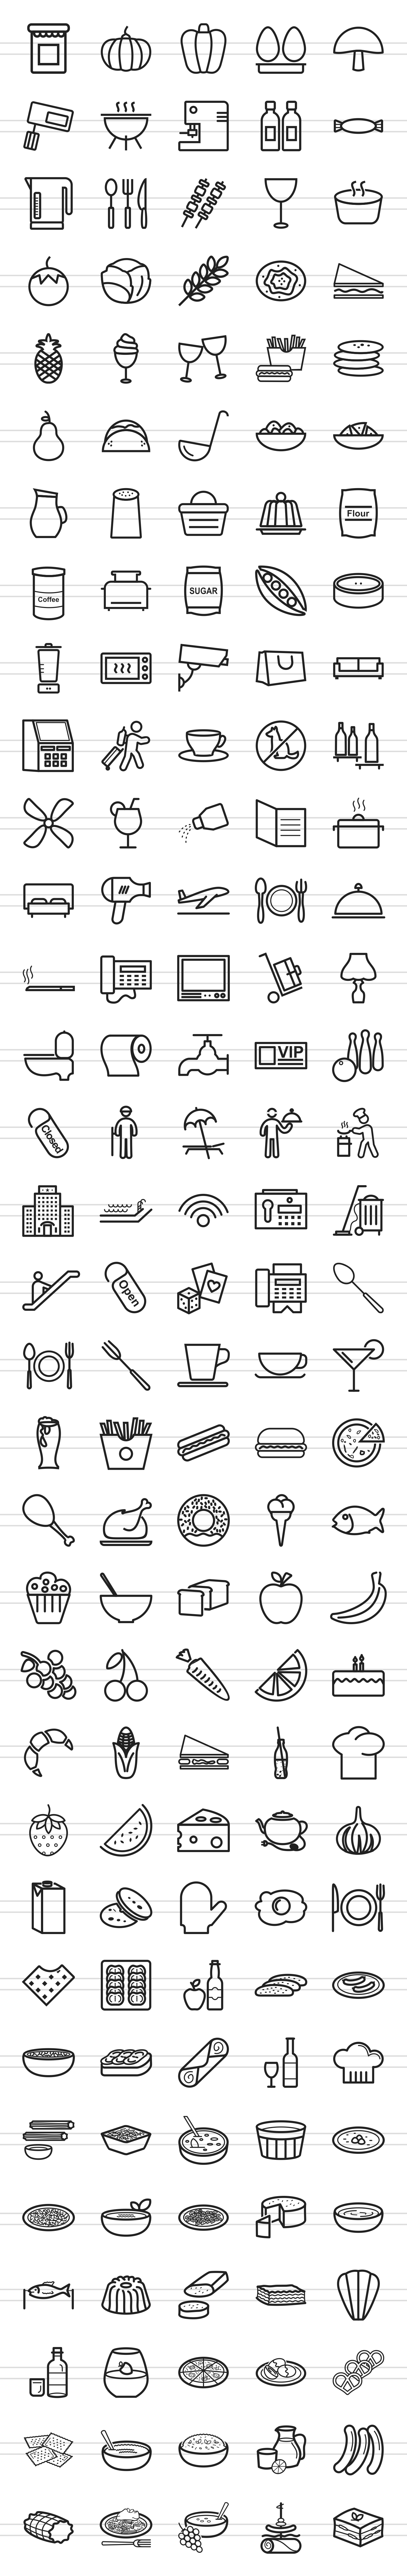 166 Restaurant & Food Line Icons example image 3